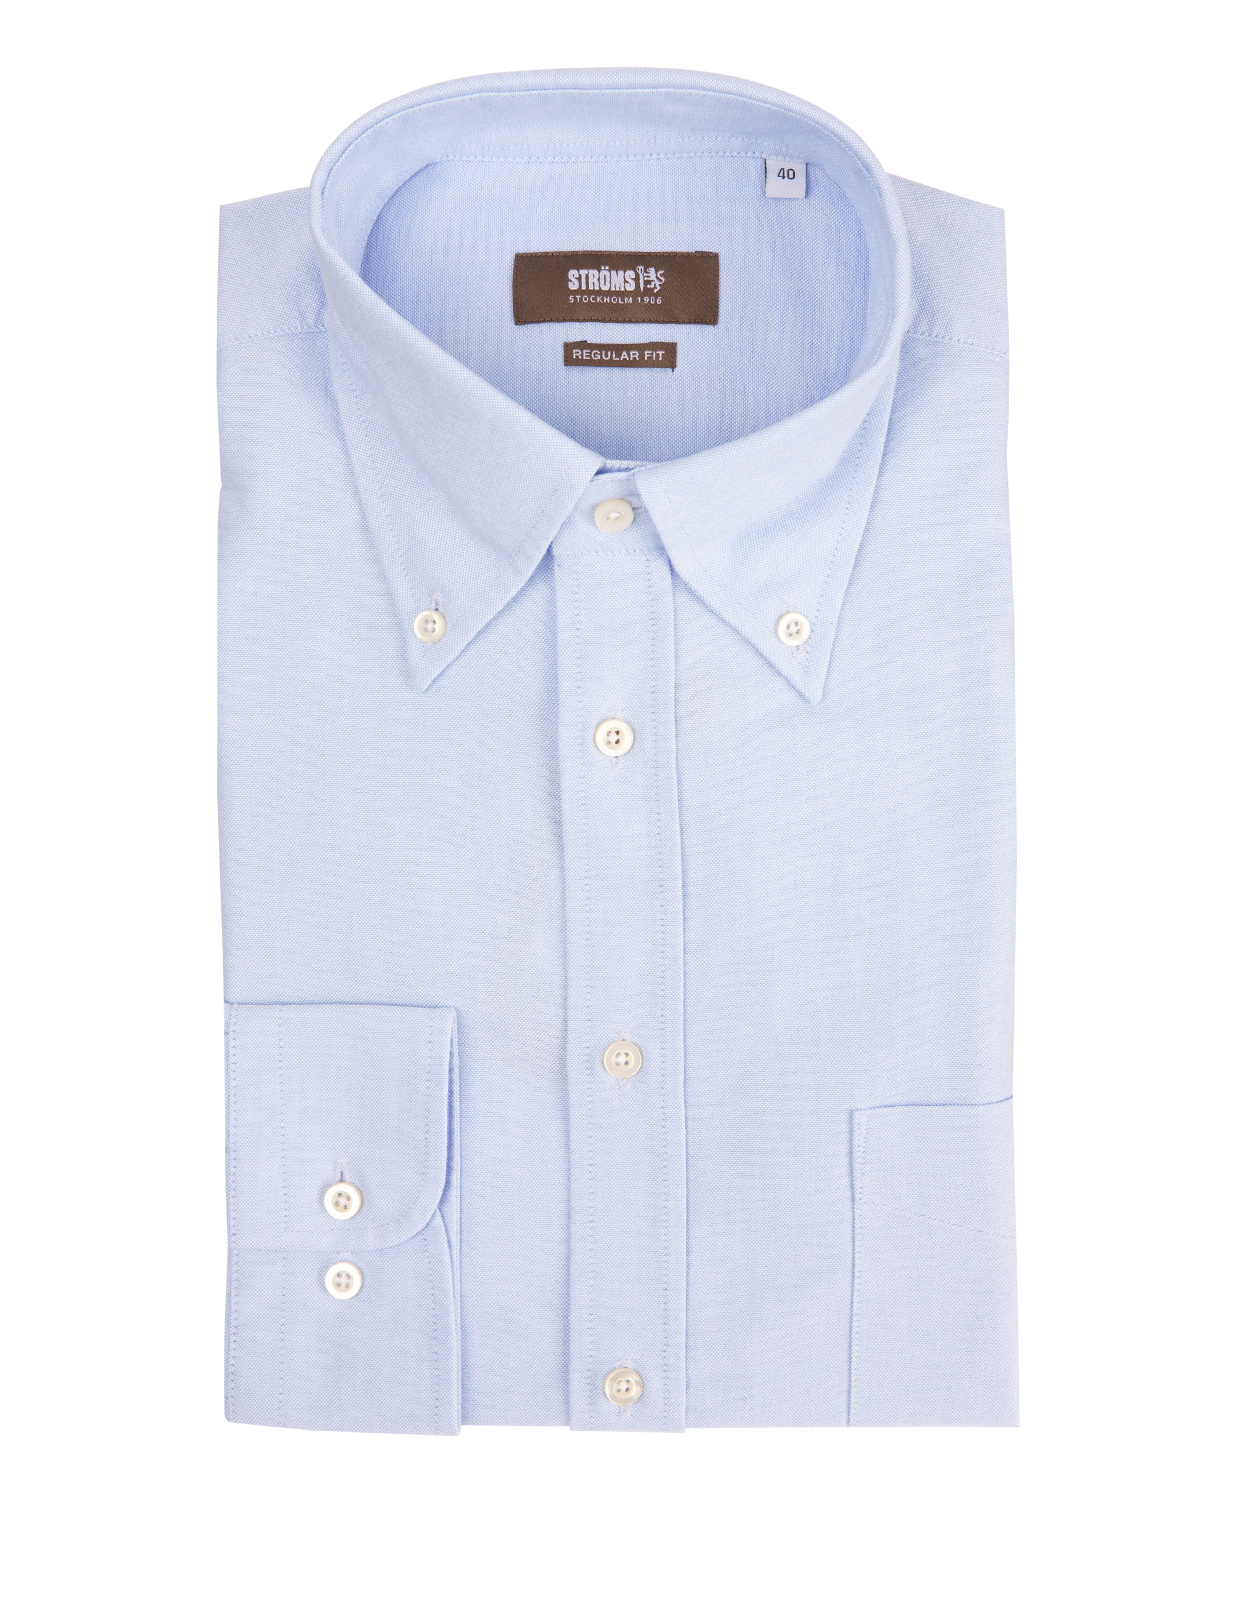 Regular Fit Button Down Oxford Shirt Light Blue Stl 46